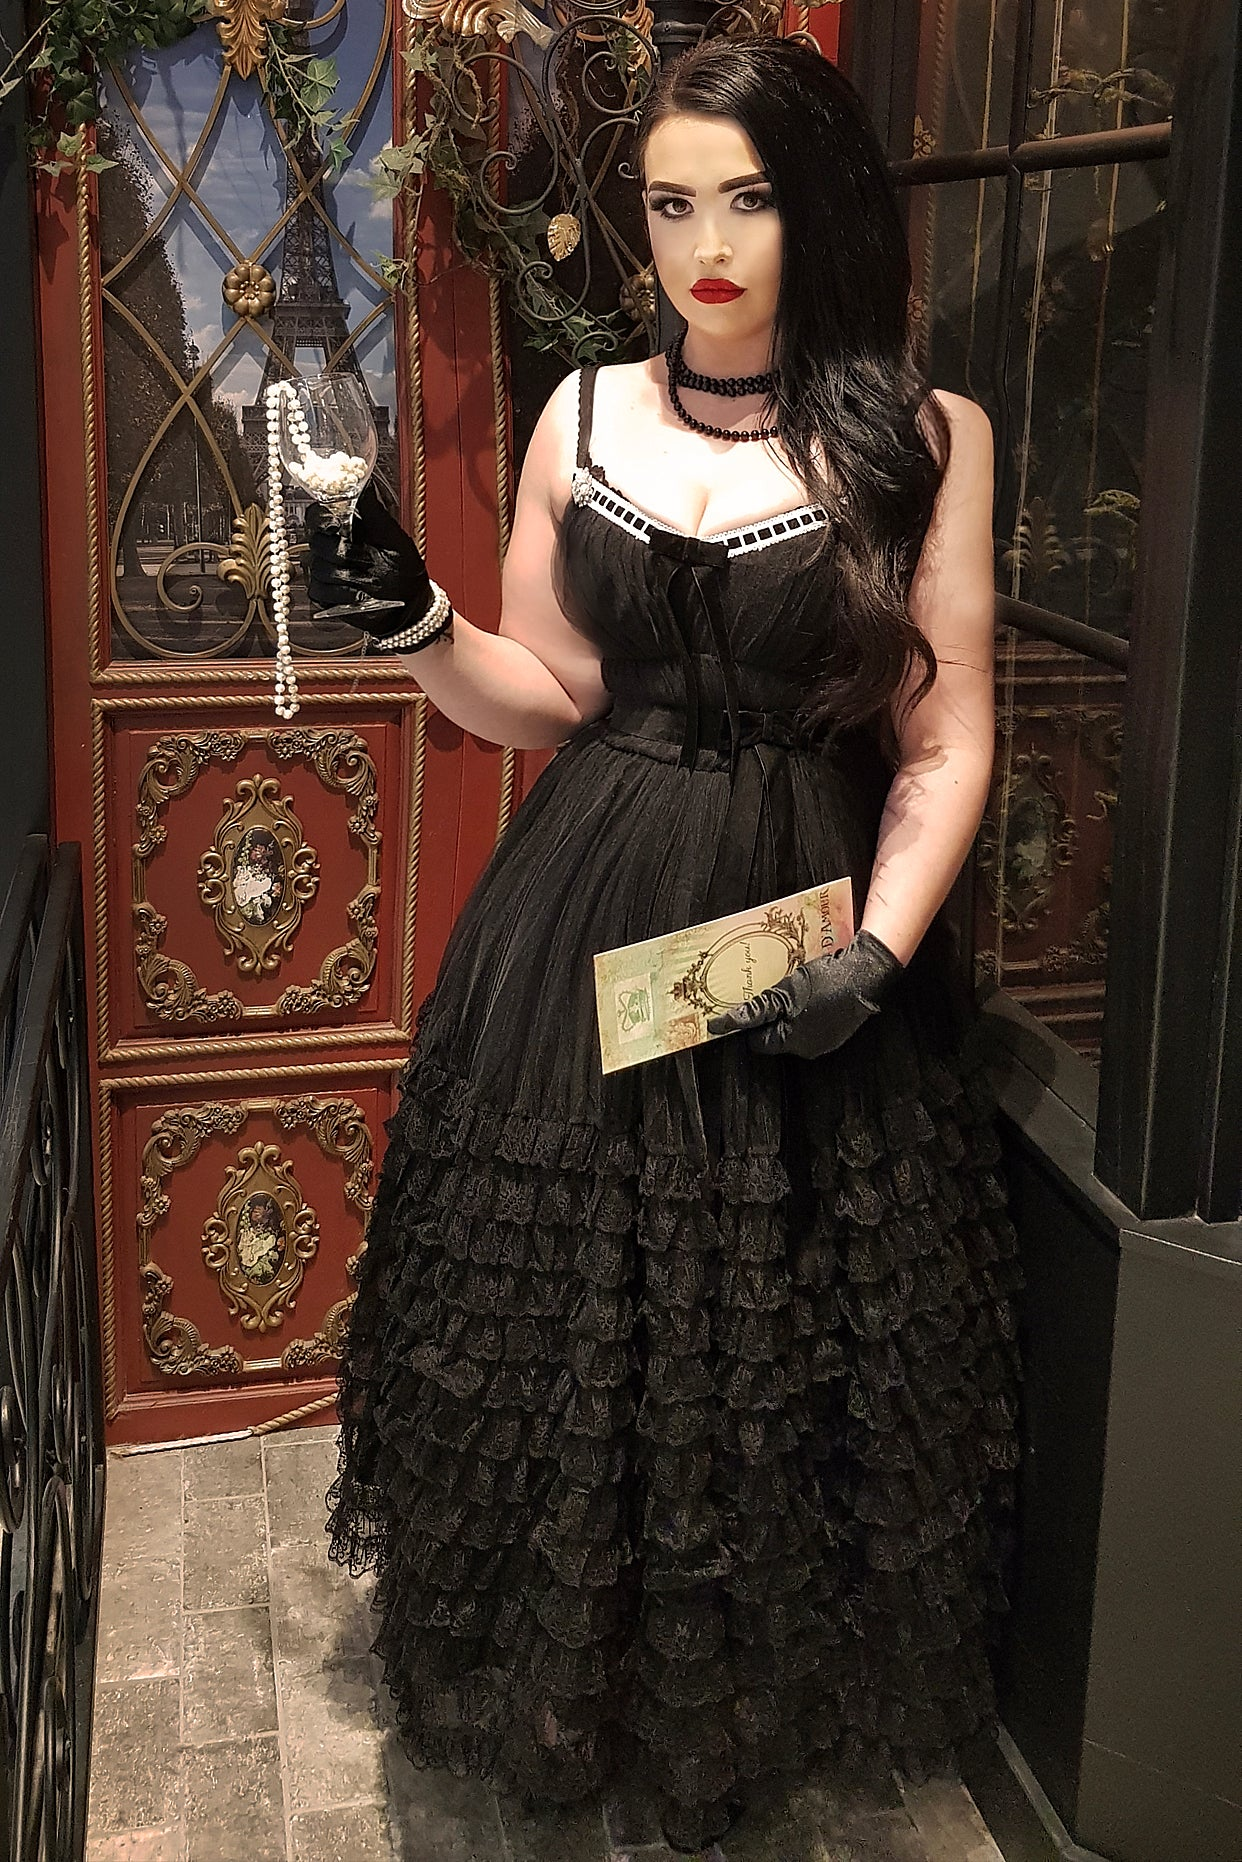 La Parisienne Nuit Opera Dress